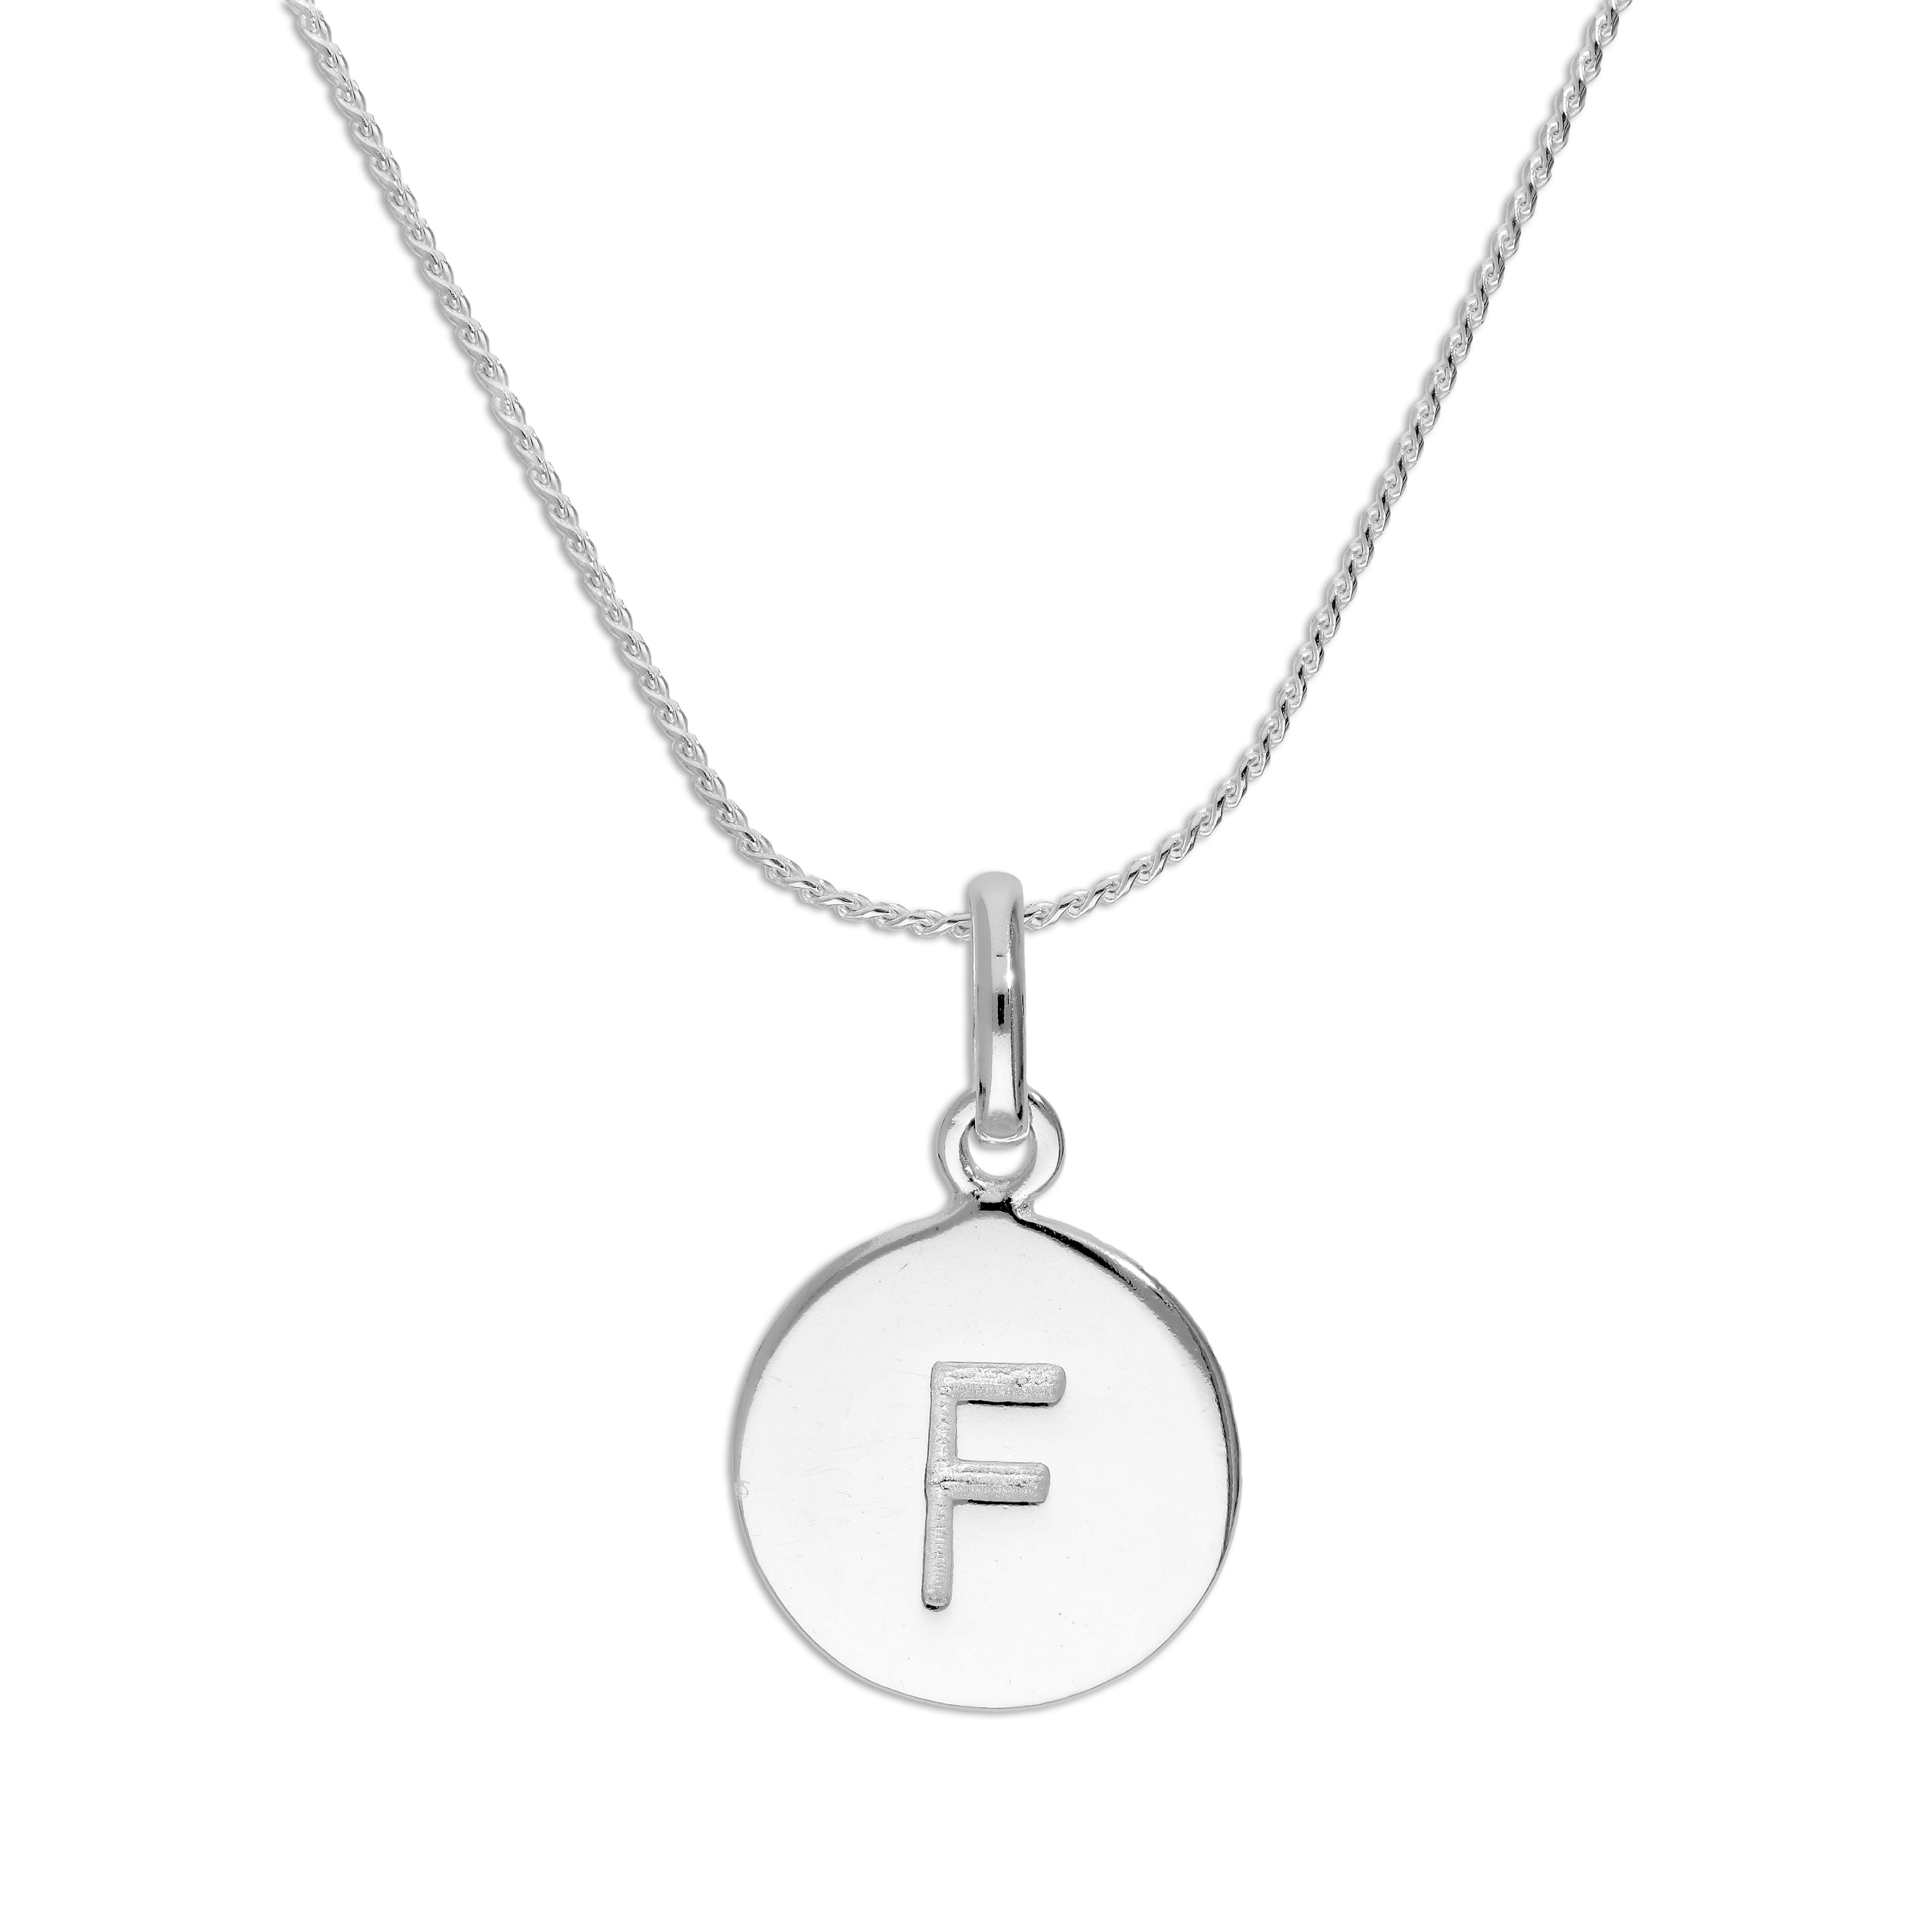 An image of Sterling Silver Initial Letter F Necklace 18 Inches Blue